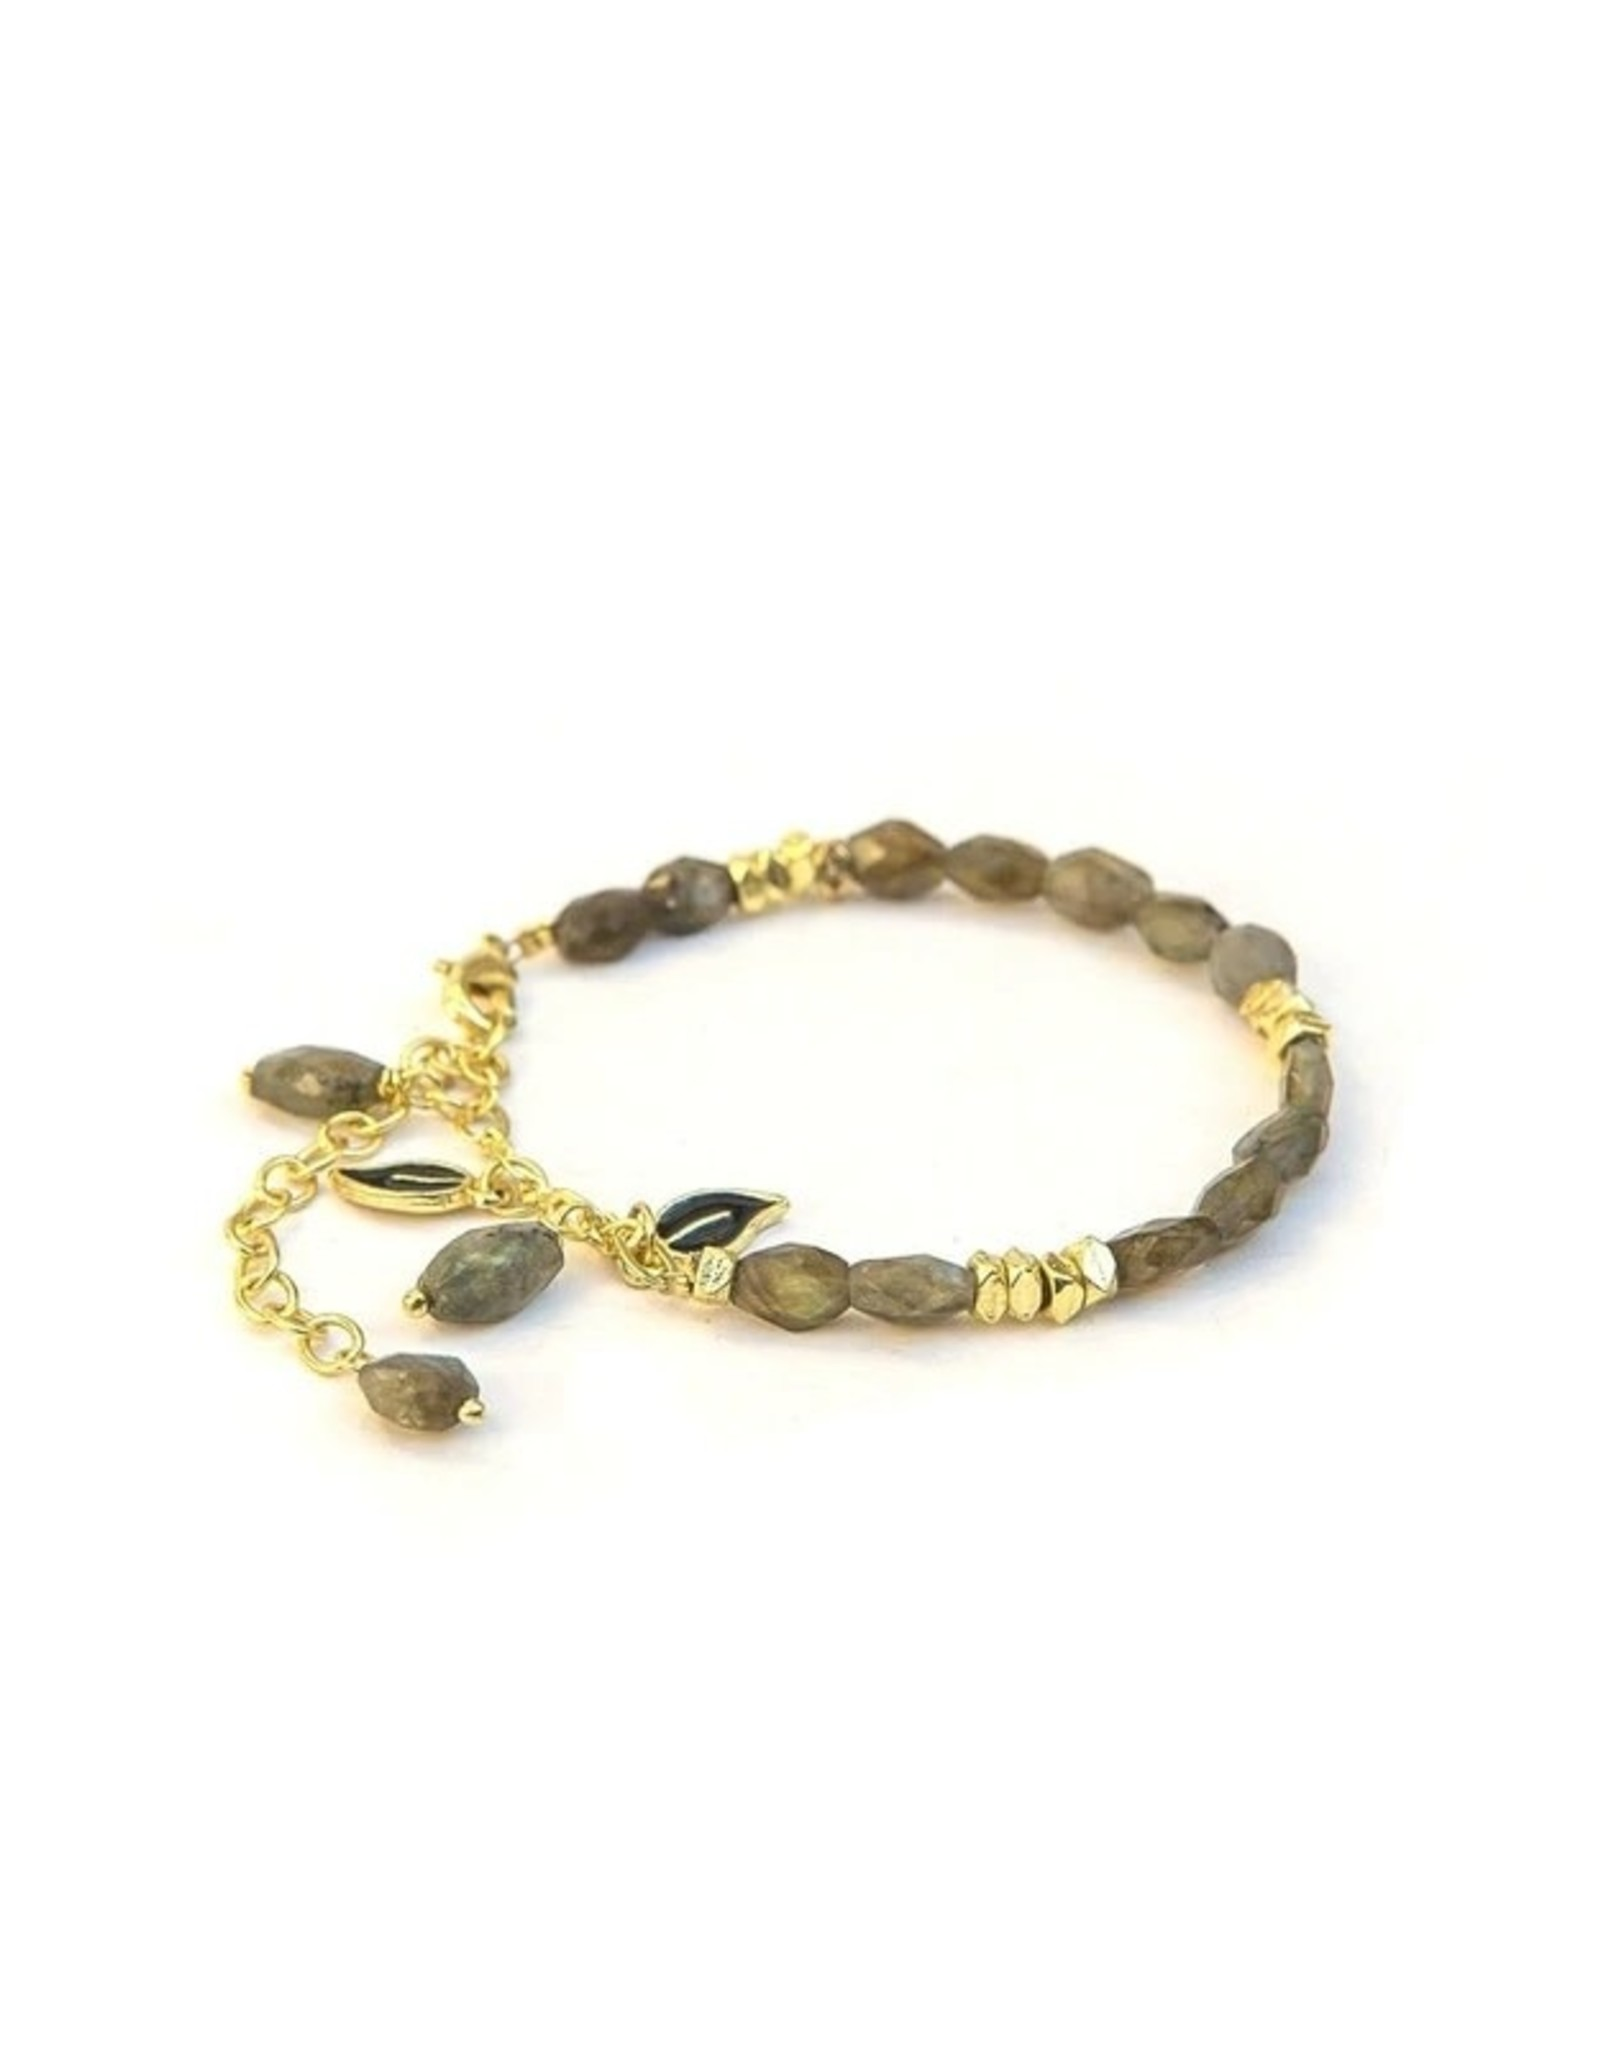 Fair Anita Labradorite Leaves Bracelet, India